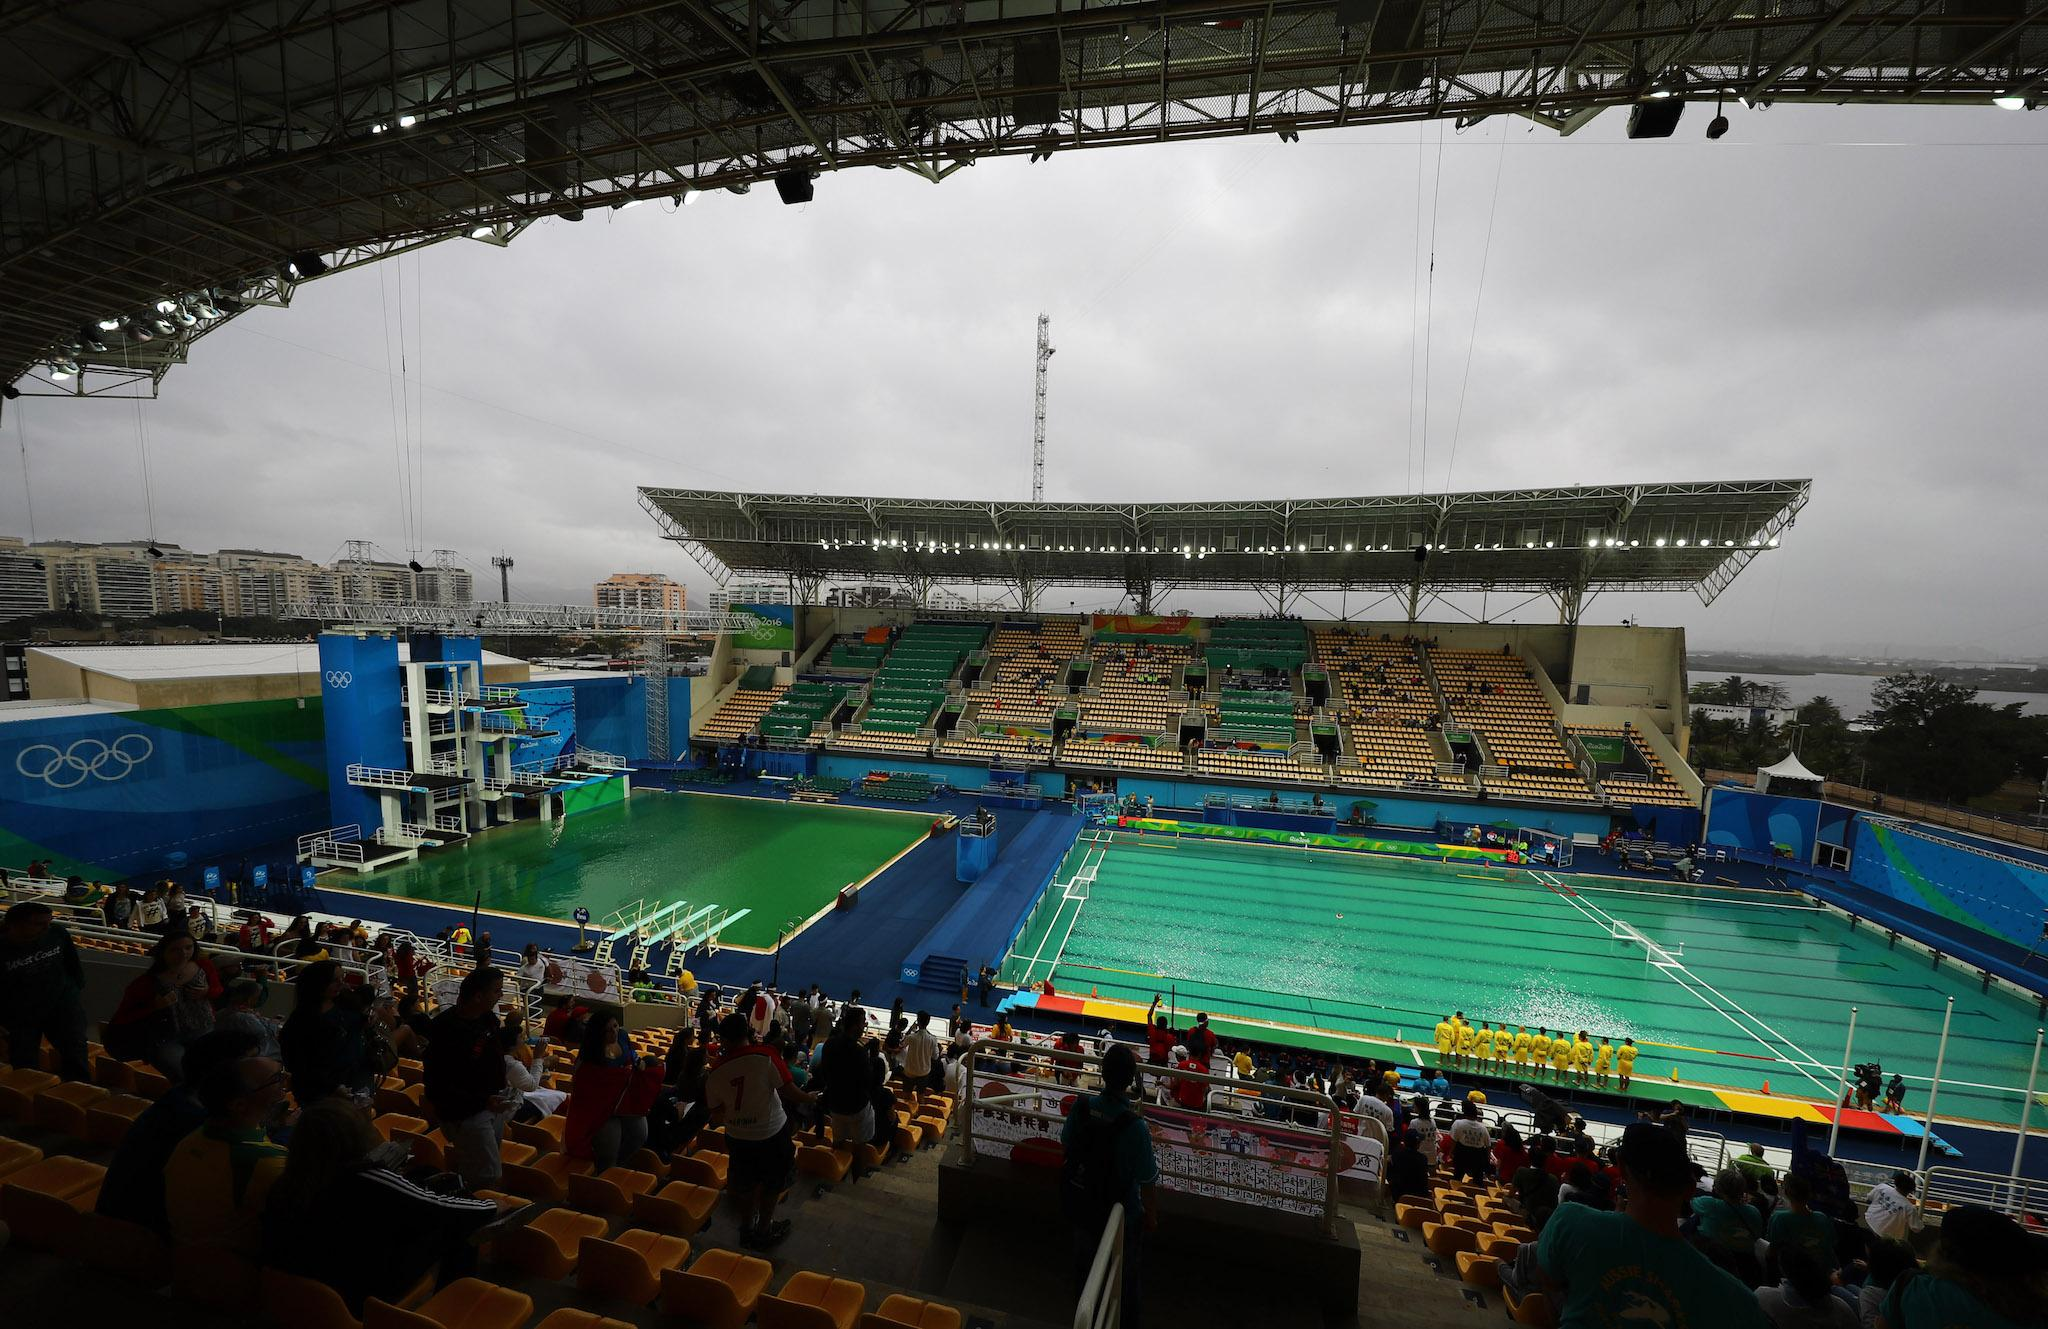 Rio 2016: The Olympic diving pool is still green despite health warnings, and may never be fixed